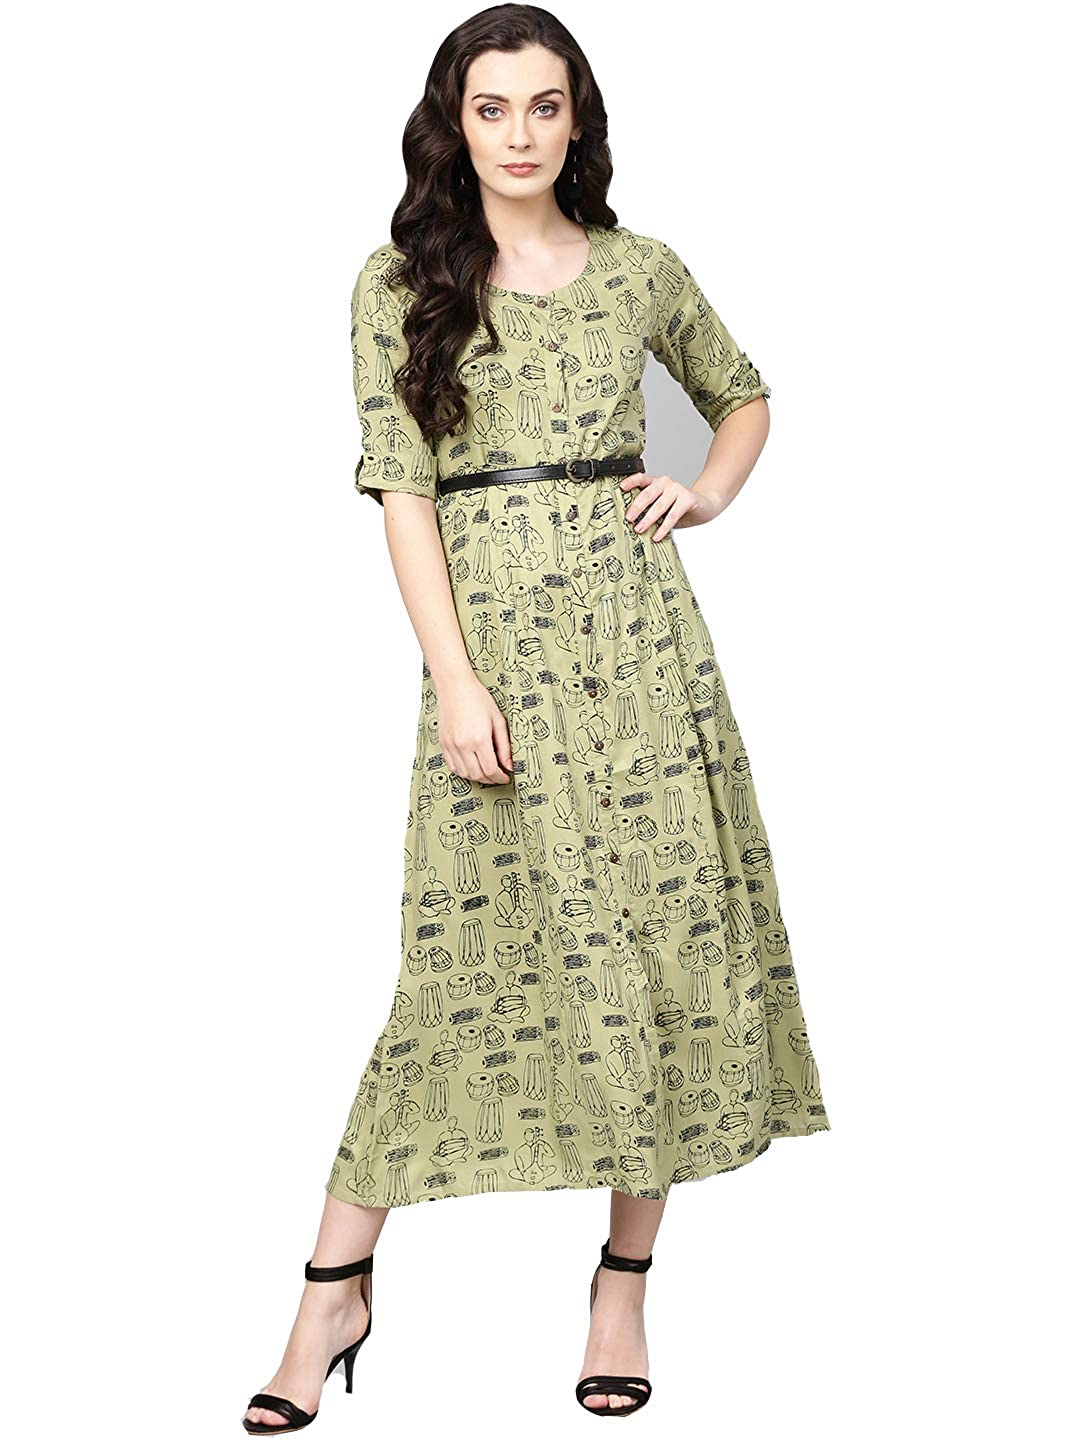 62cbe2f5ca Varanga green printed flared Dress with a belt.  Amazon.in  Clothing    Accessories